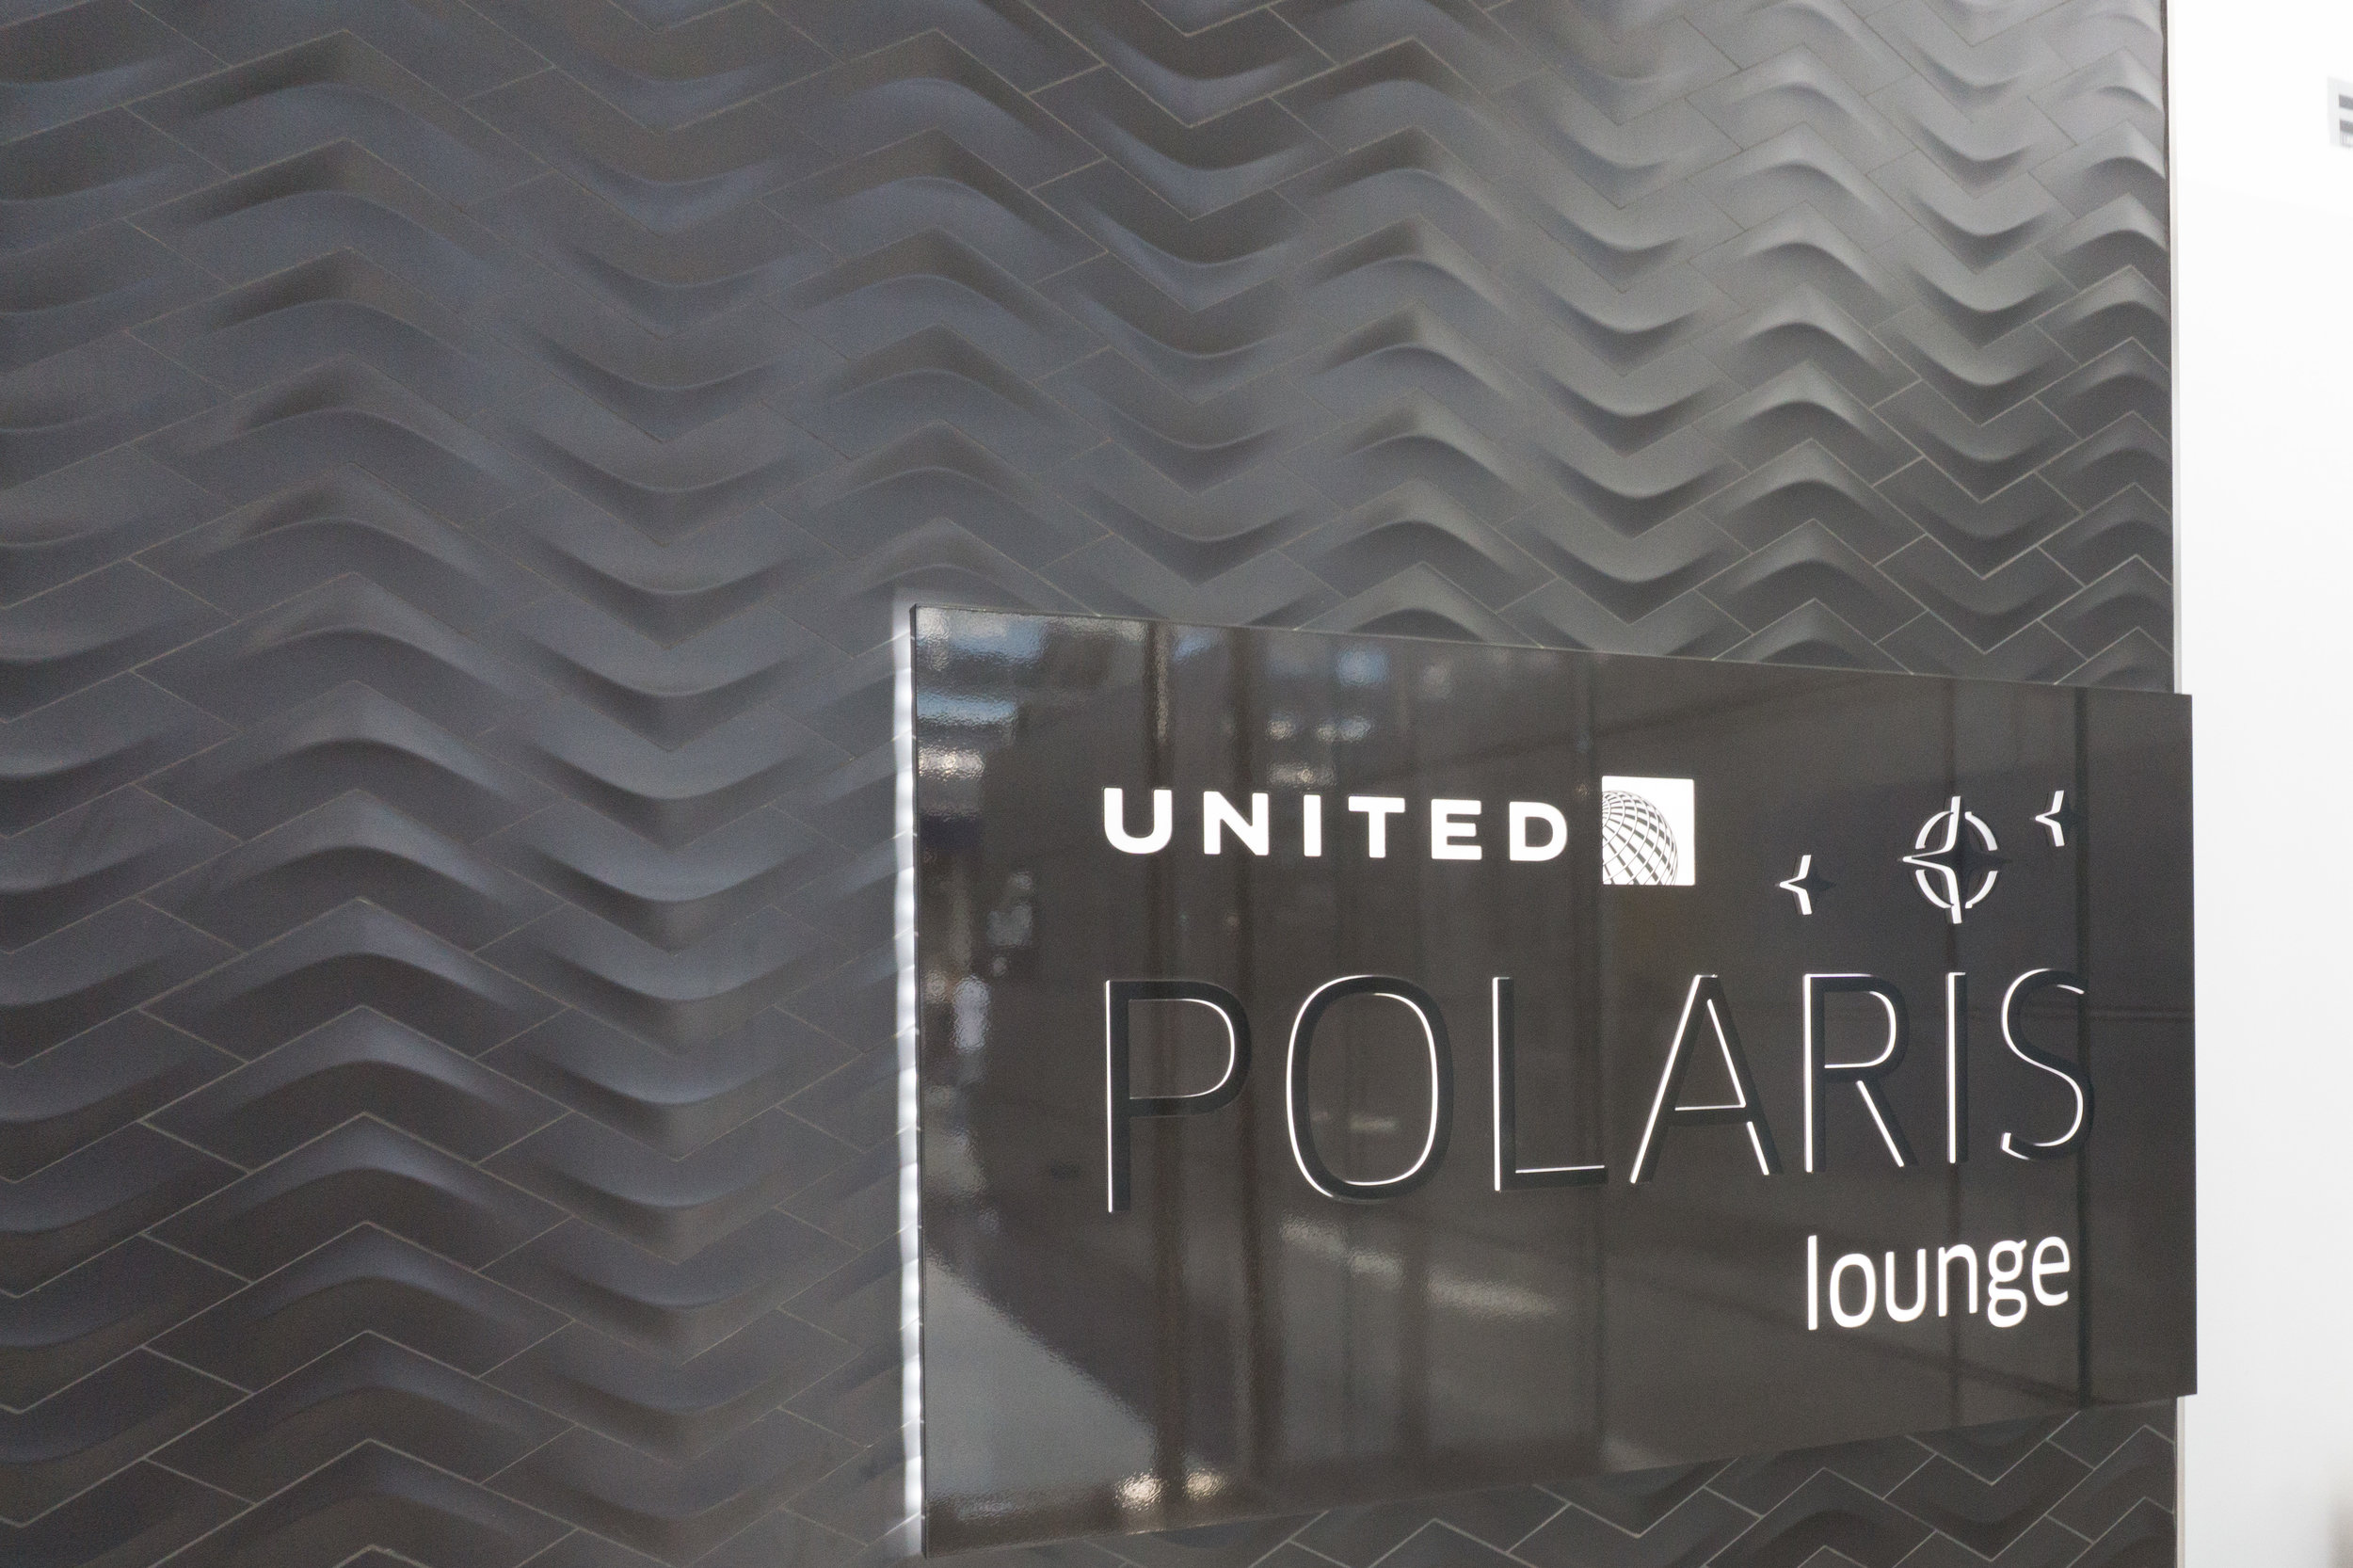 Entrance to the Polaris Lounge ORD